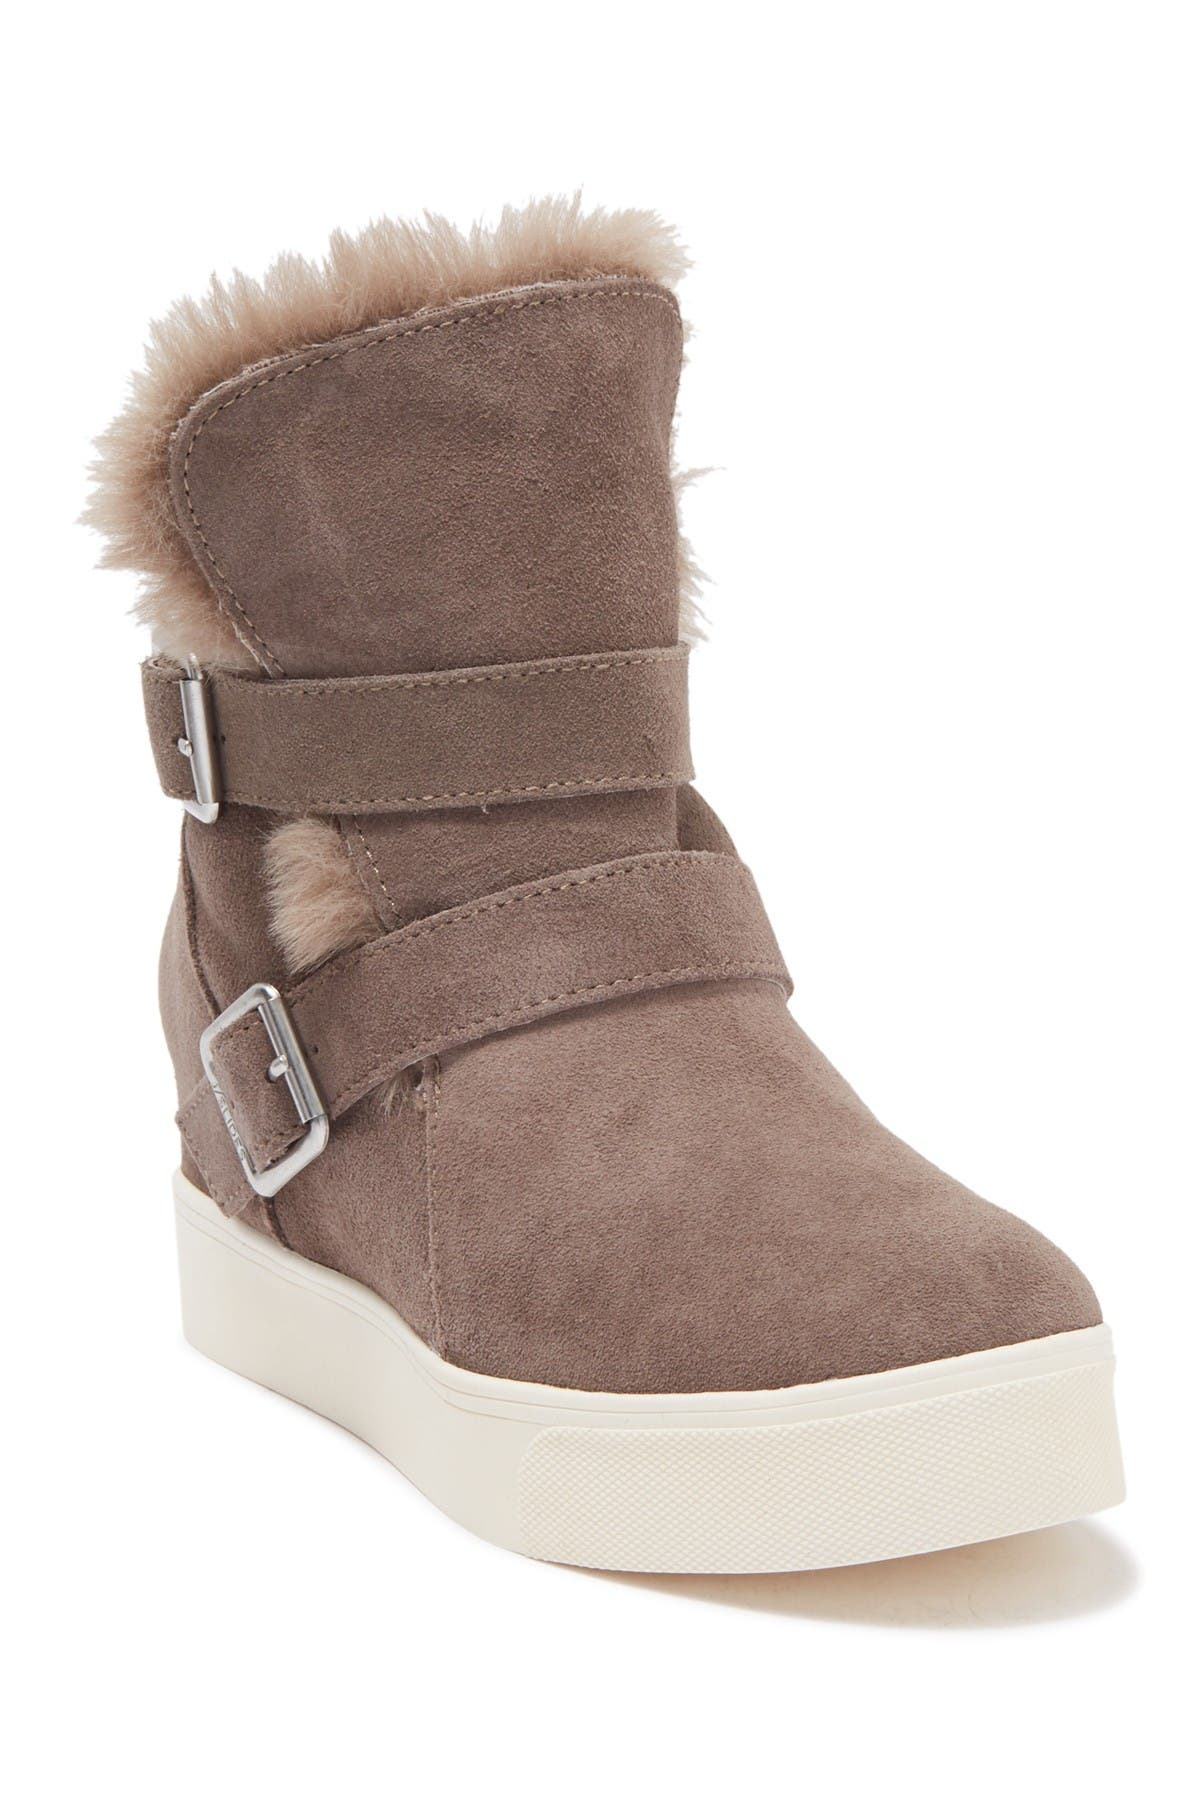 Image of J/Slides Wells Faux Fur Trim High Top Sneaker